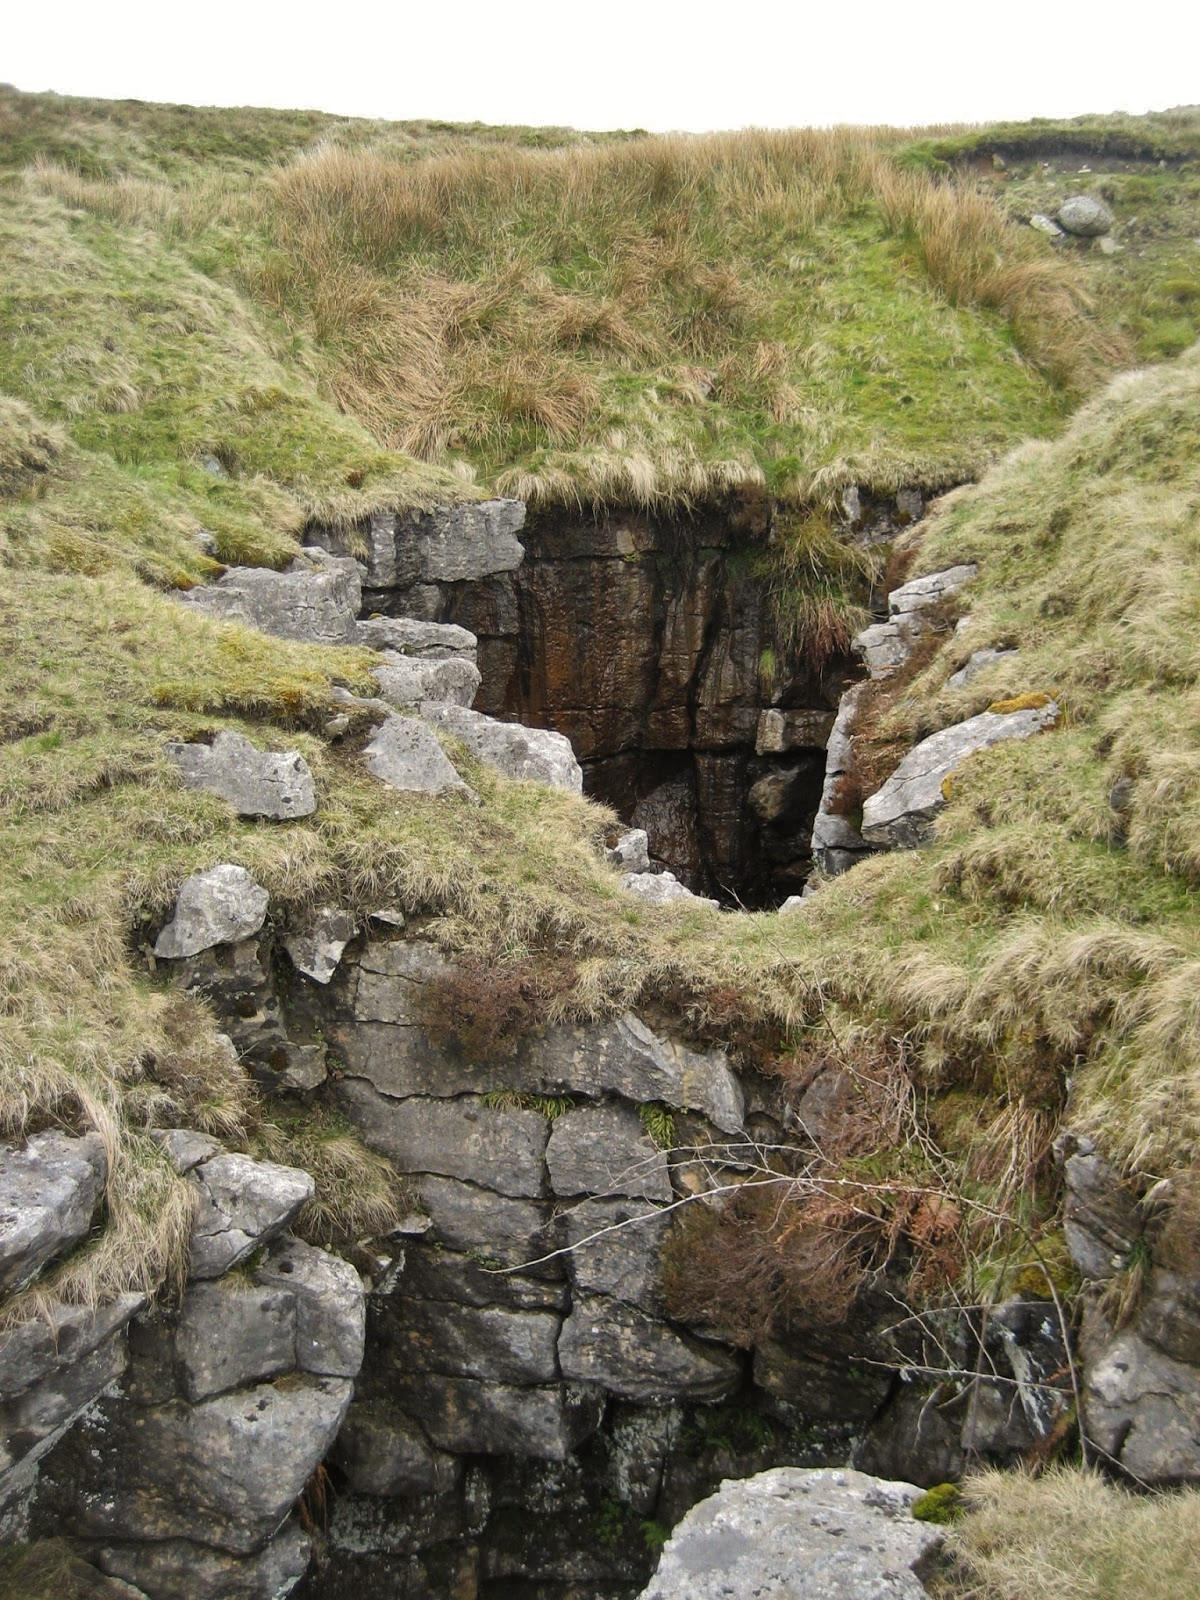 Boggart's Roaring Holes, named by the Balderstons in 'Ingleton Bygone and Present' (1888) for the strange sounds, 'something between a roar and a growl' produced by throwing stones into the gloomy depths. Stephen Oldfield